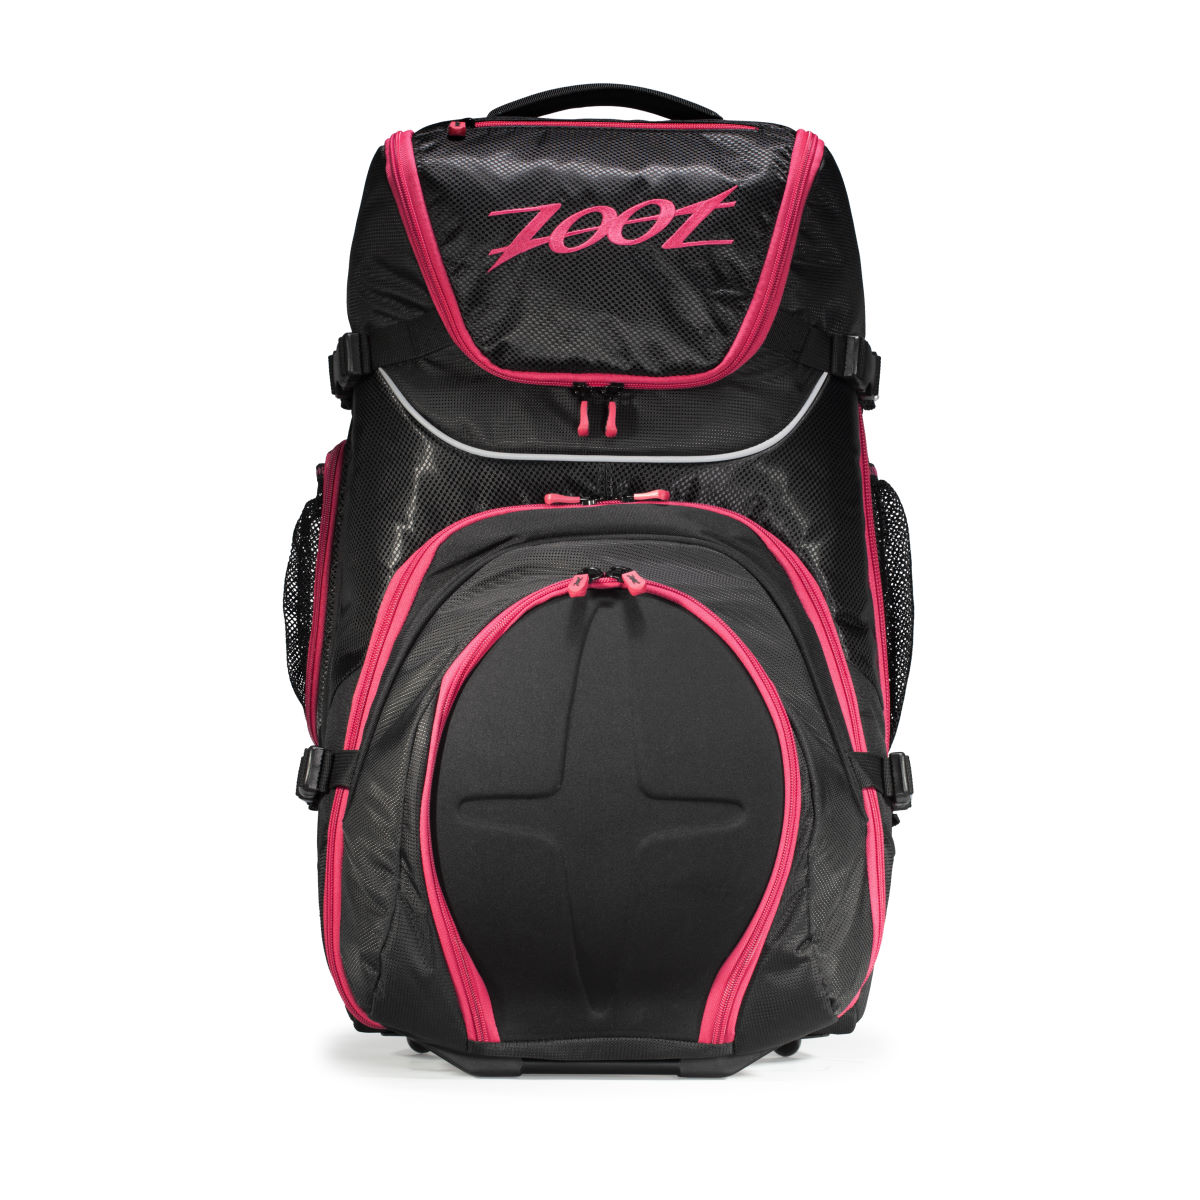 Image of Sacoche de triathlon Zoot Ultra - One Size Noir/Rose | Sacs à dos